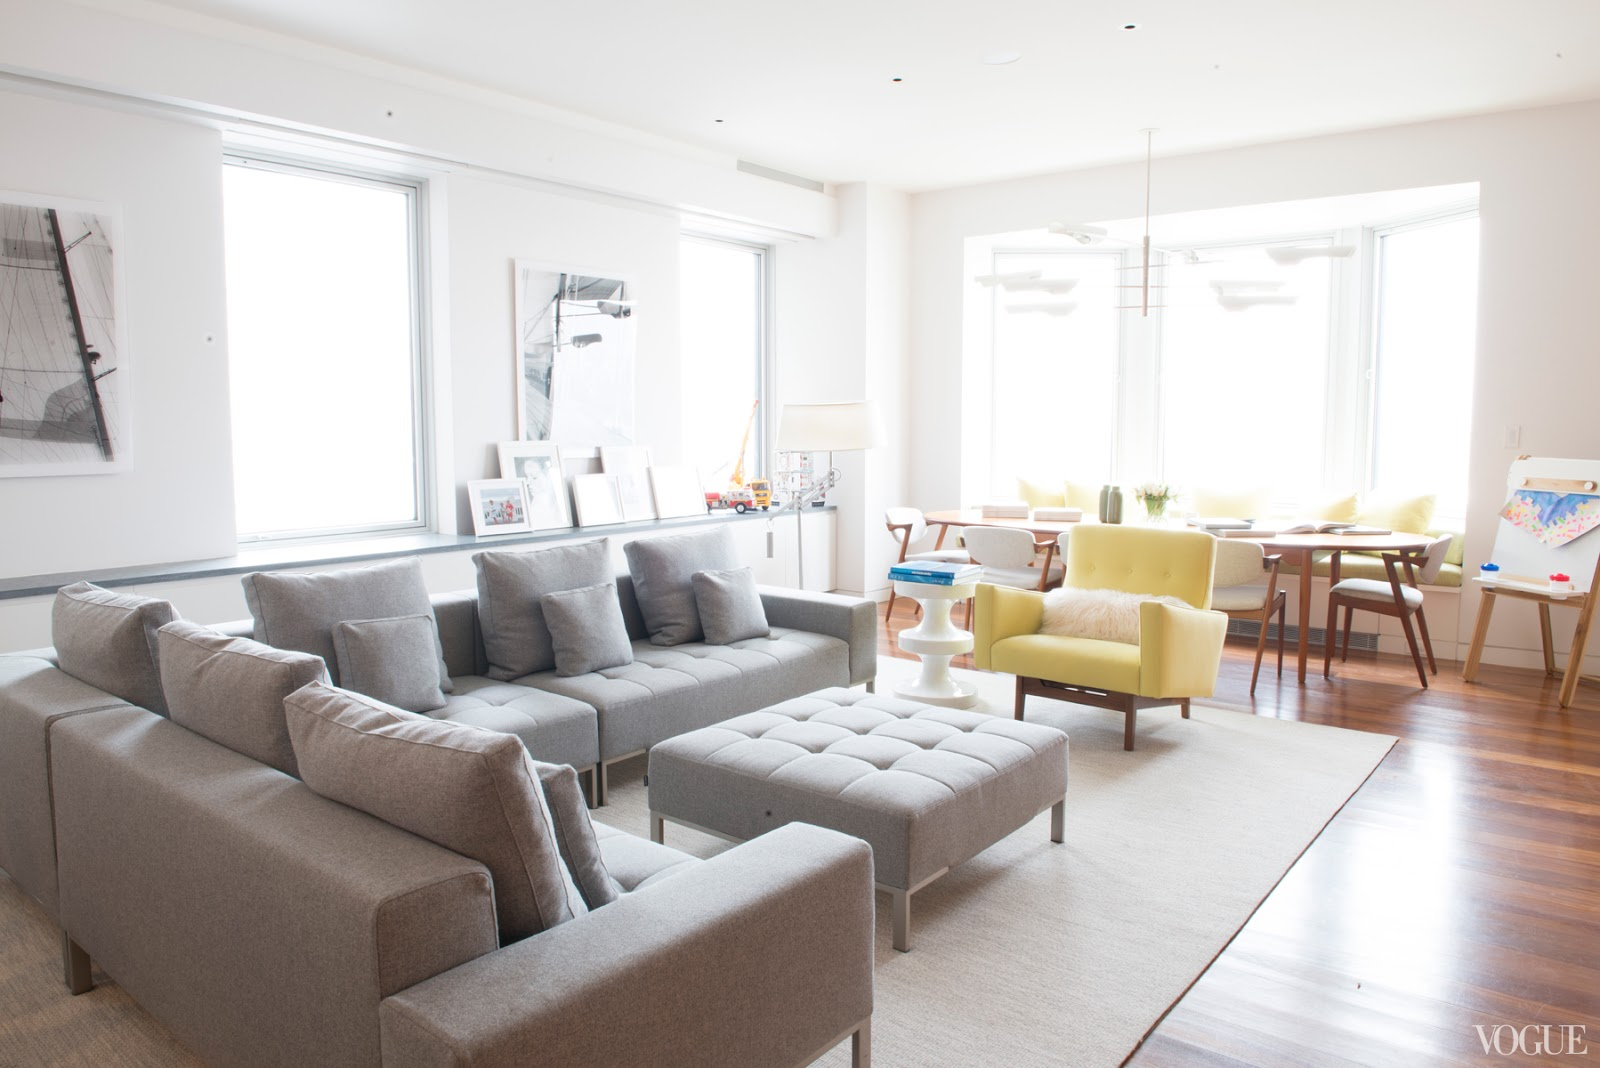 BEYOND NEUTRAL COLOR PALETTE - LIVING THE SERENE LIFE IN NYC!   COCOCOZY